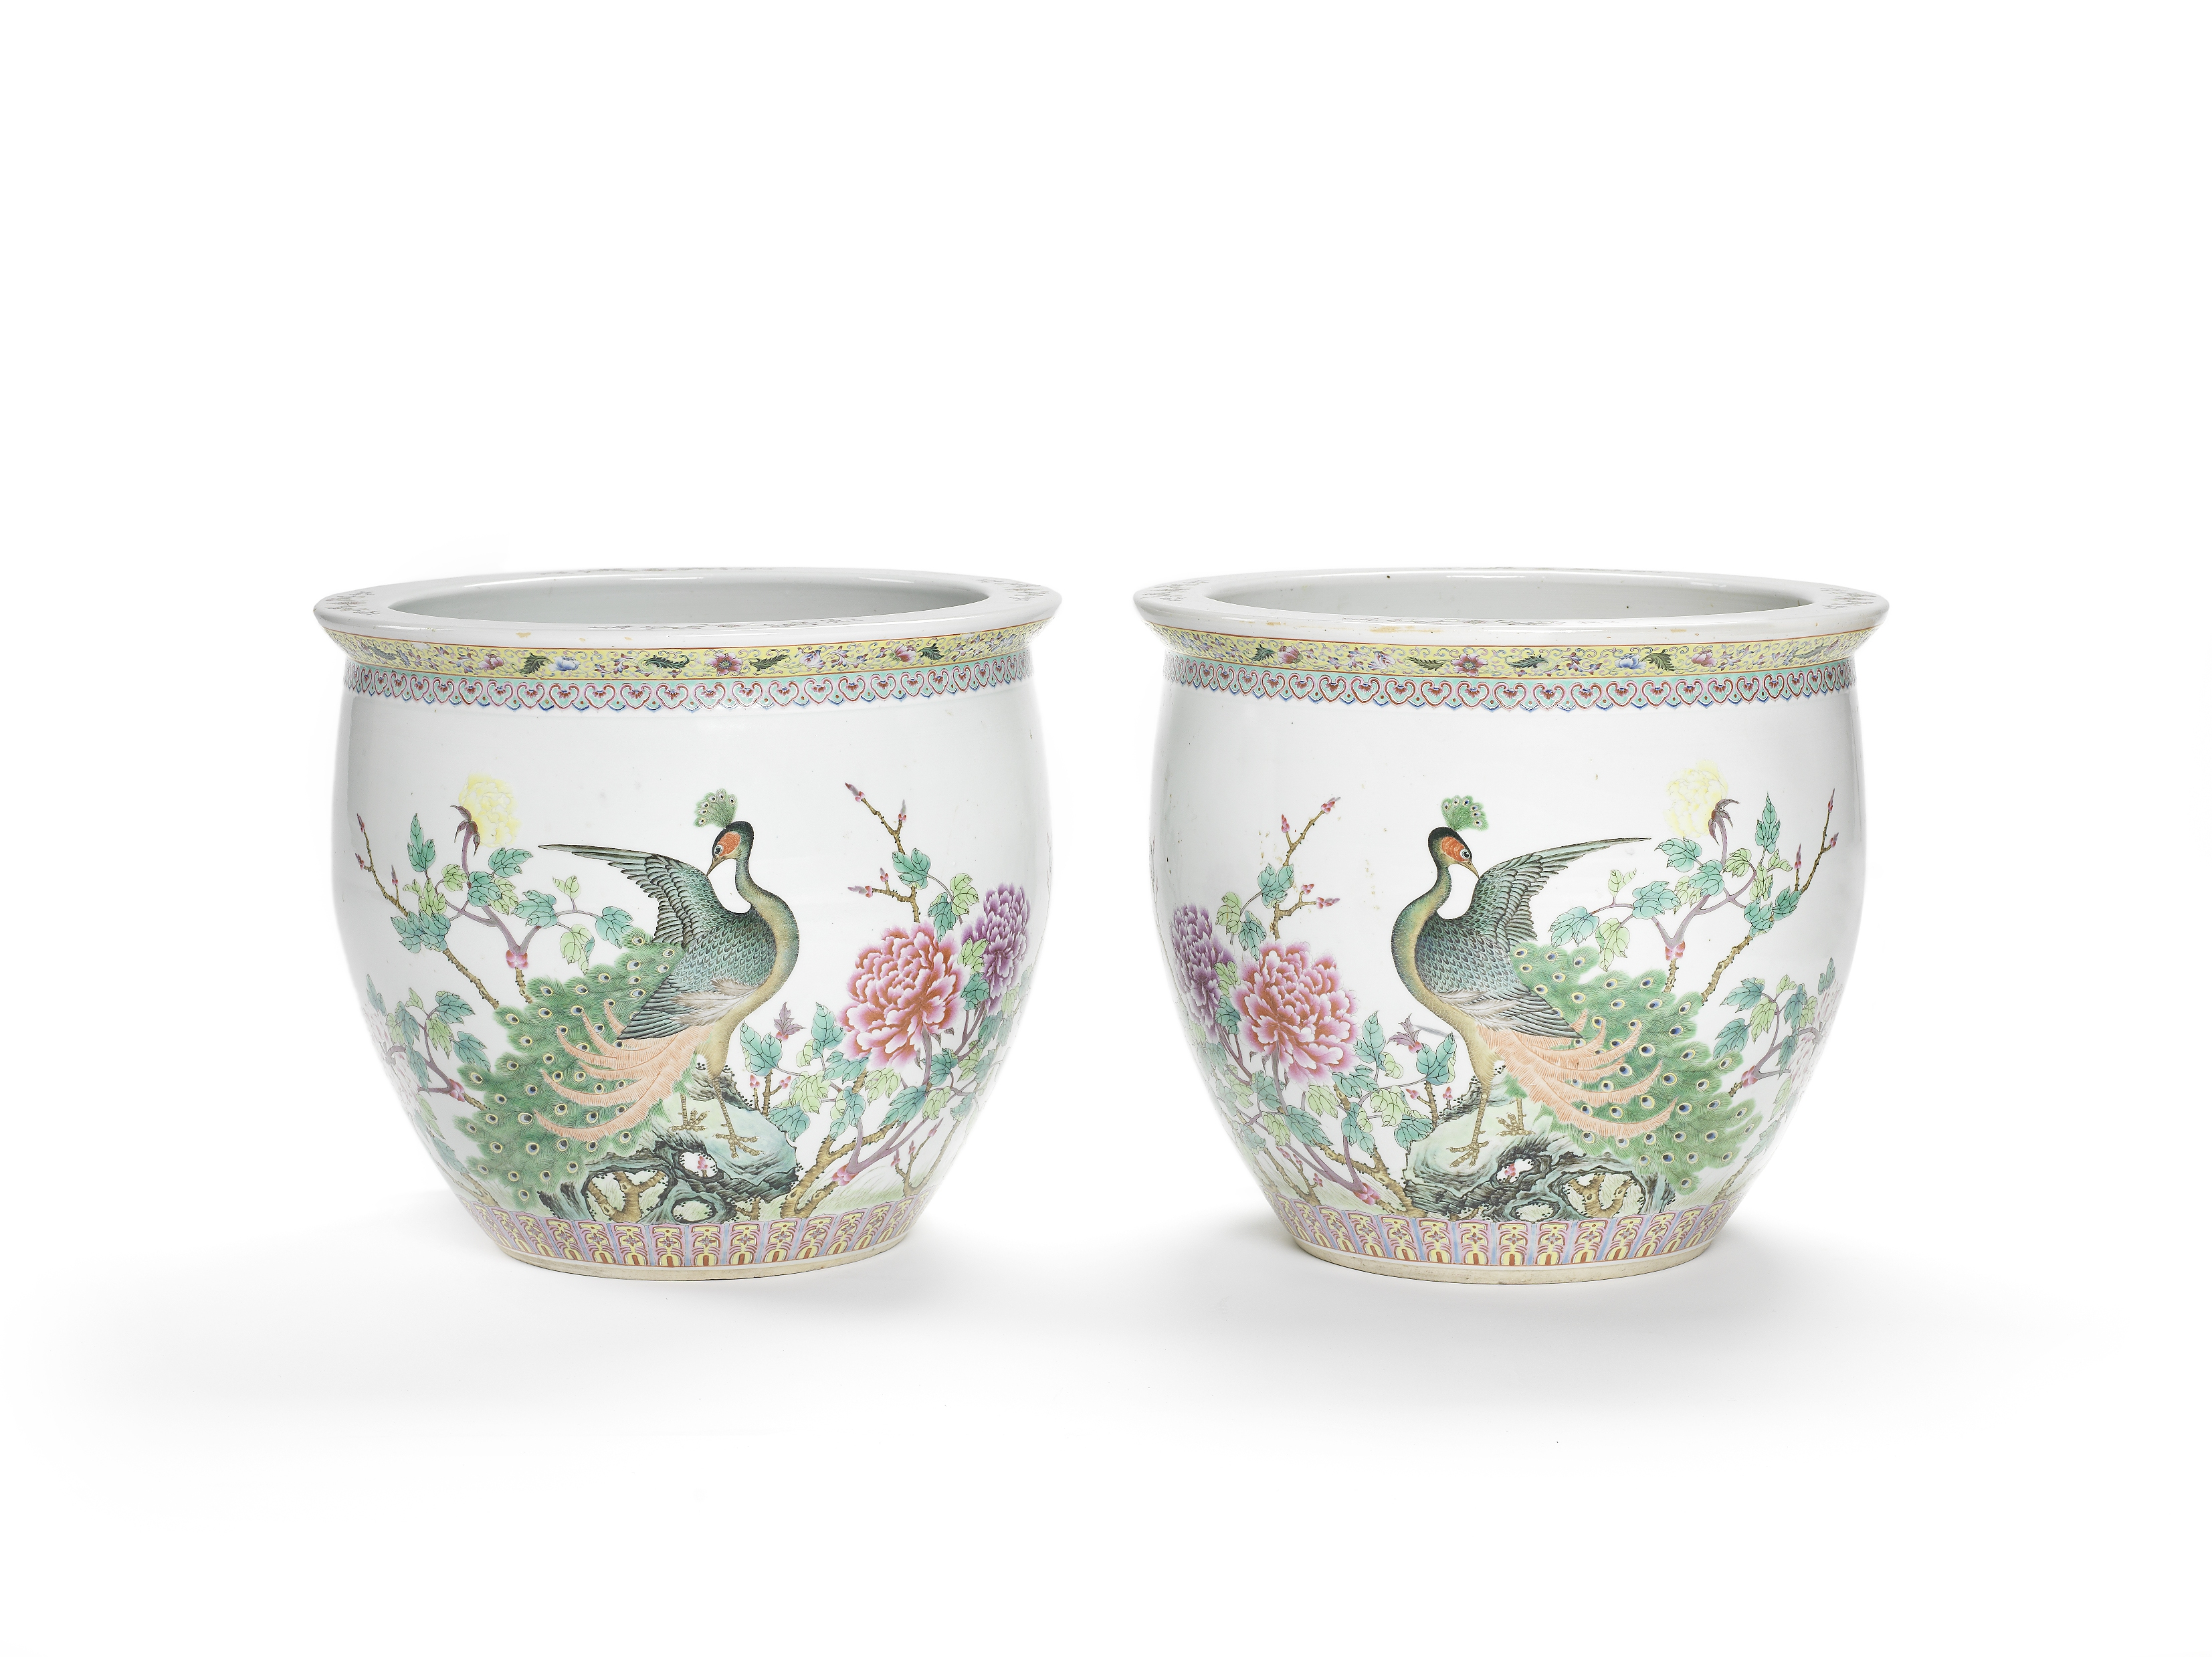 Lot 253 - A pair of Chinese famille rose enameled jardinieres 20th century